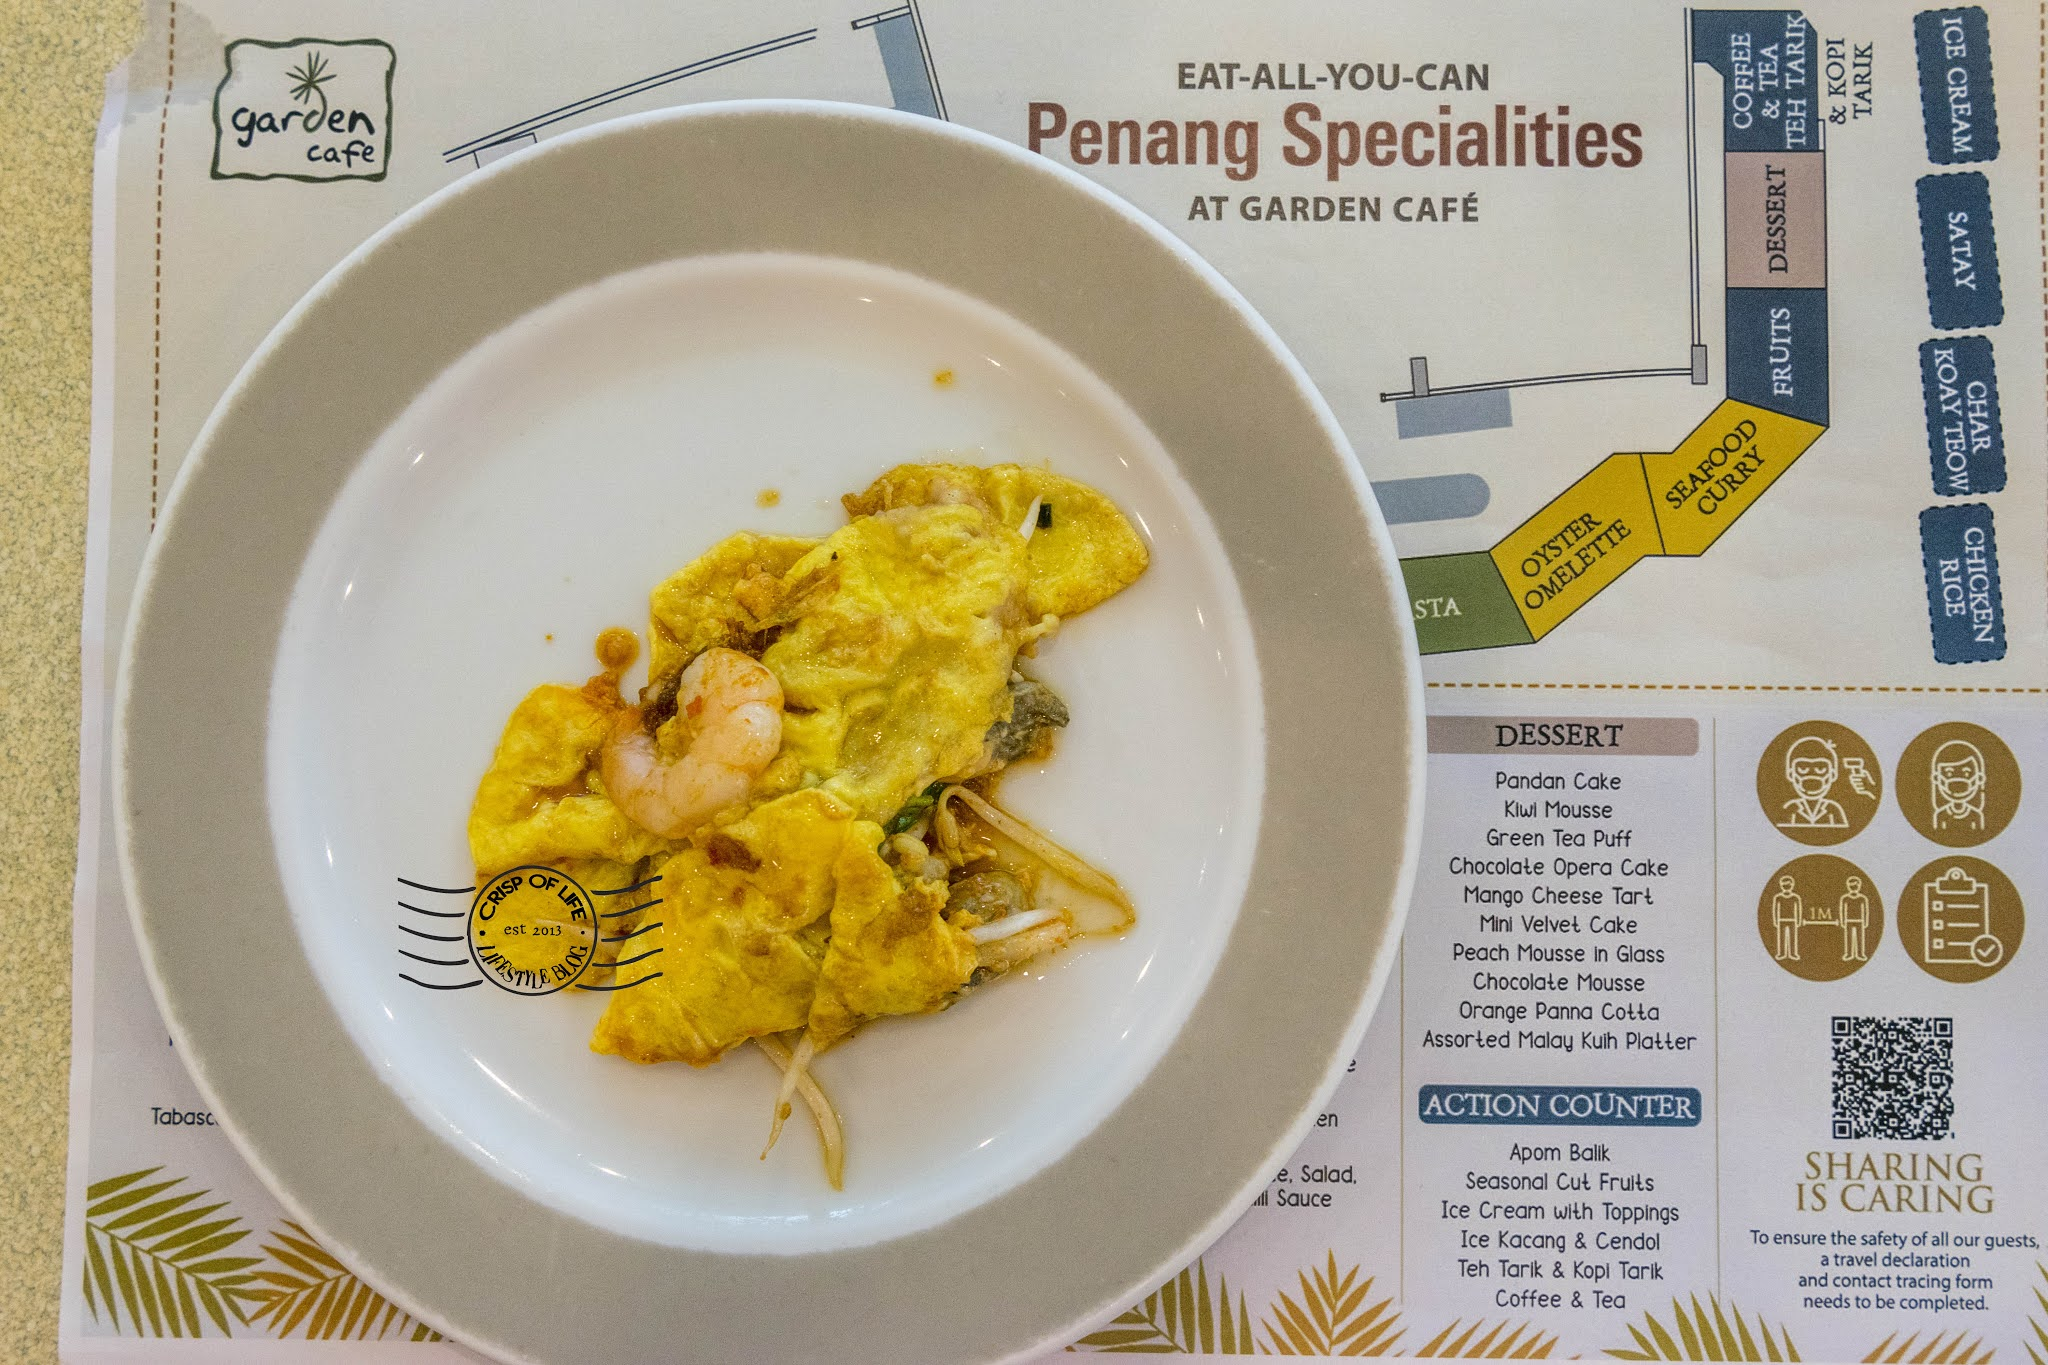 Eat-All-You-Can Penang Specialities with Buy 1 Free 1 Promotion @ Garden Cafe, Golden Sands Resort